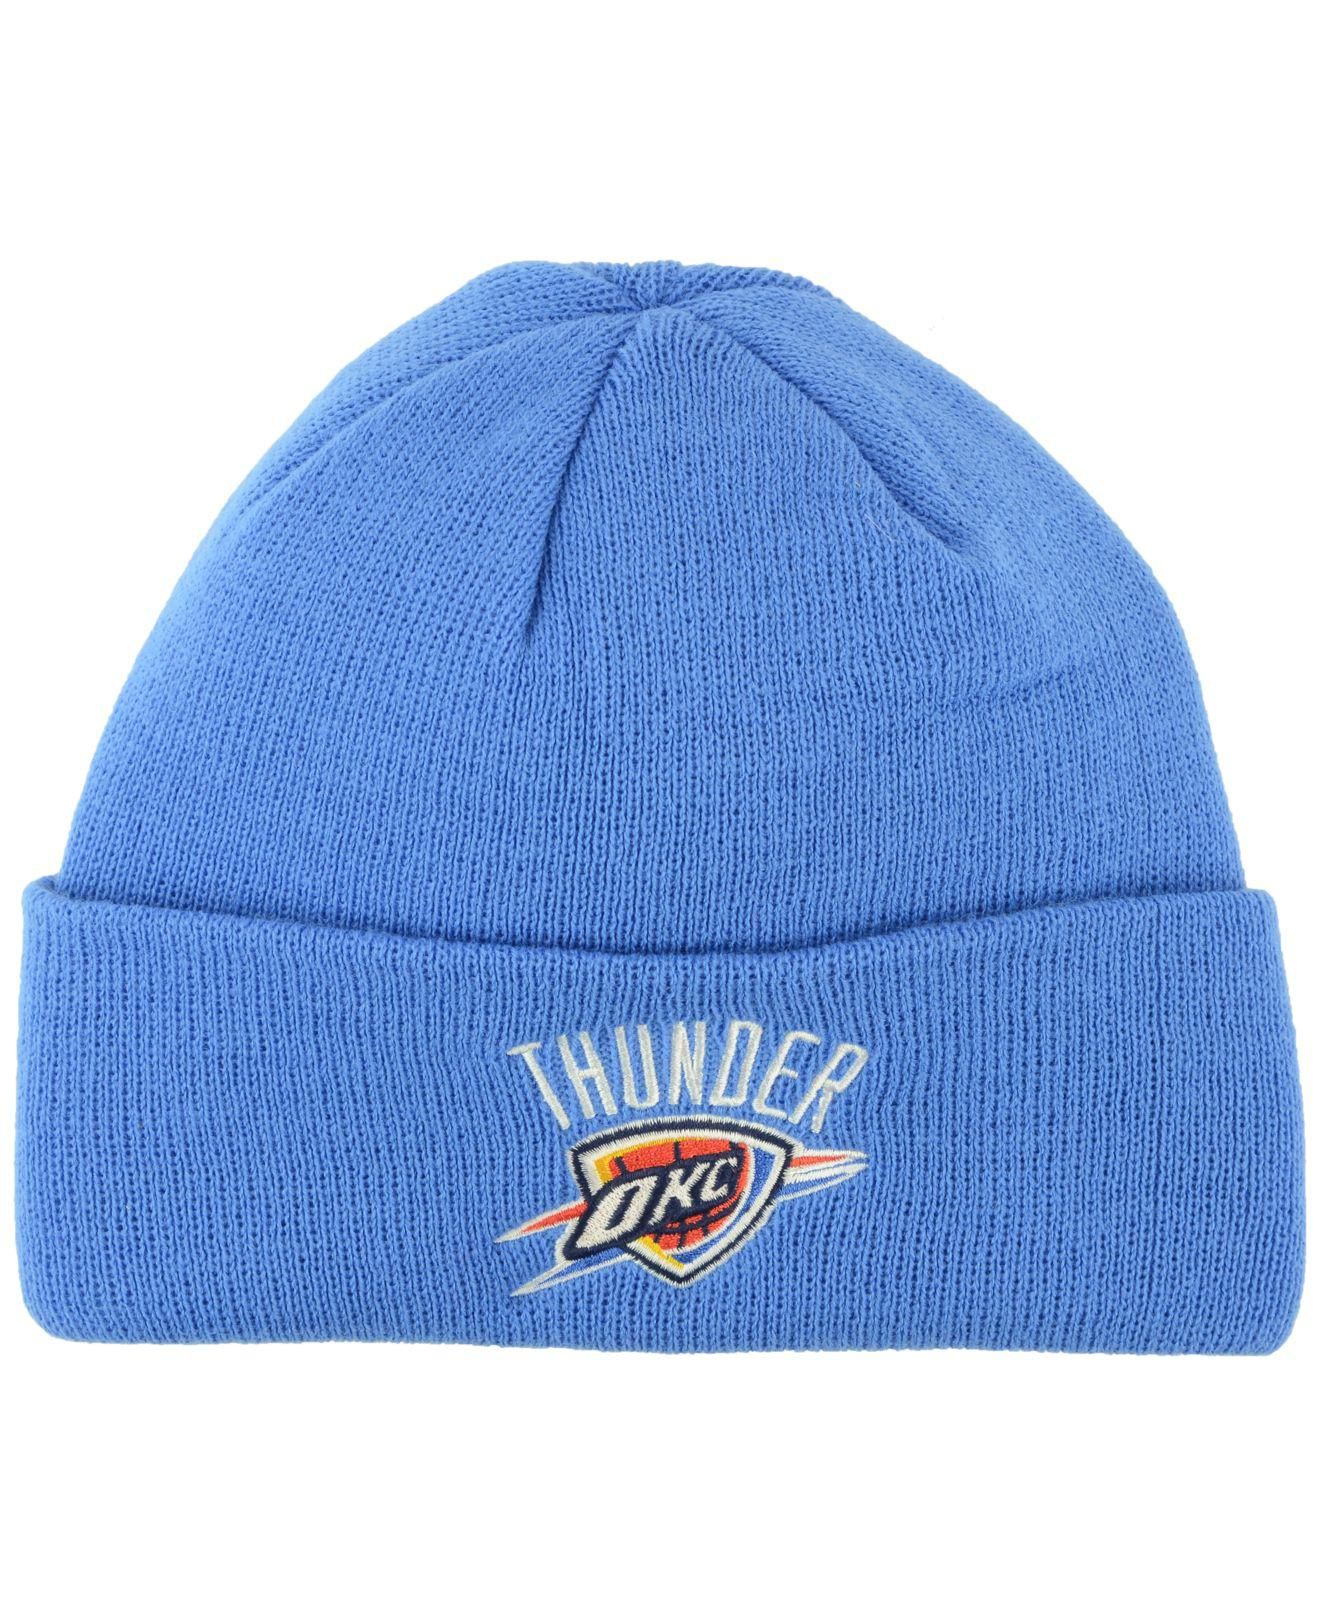 85bf217036c Lyst - Adidas Oklahoma City Thunder Cuff Knit Hat in Blue for Men